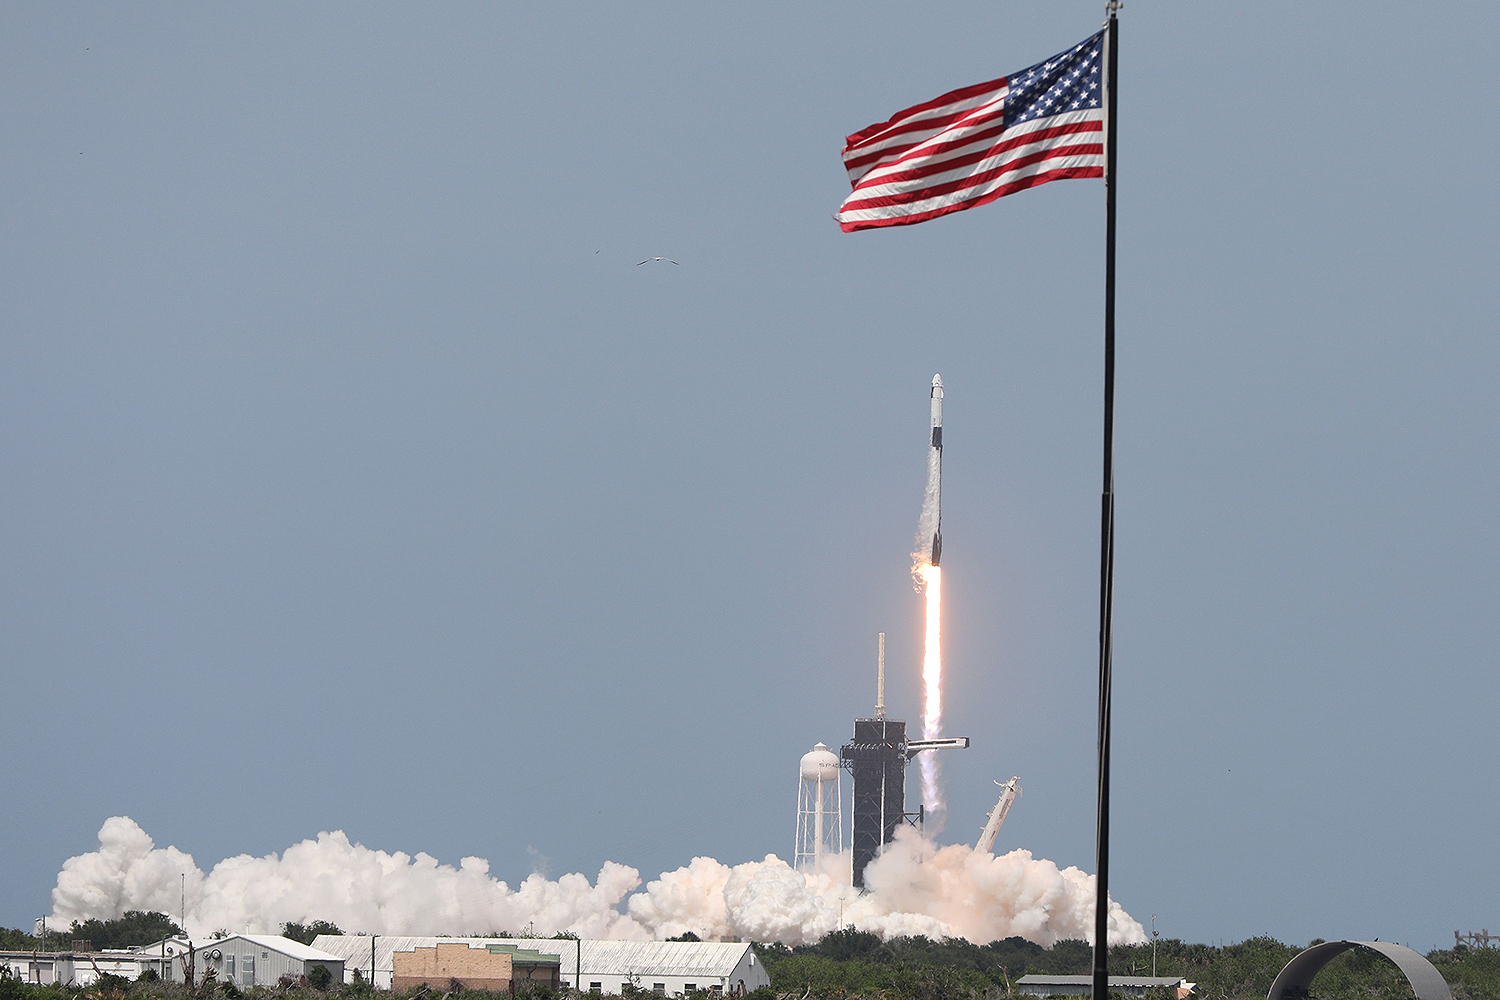 A SpaceX Falcon 9 rocket carrying the Crew Dragon spacecraft lifts off at Kennedy Space Center in Florida on May 30. GREGG NEWTON/AFP via Getty Images